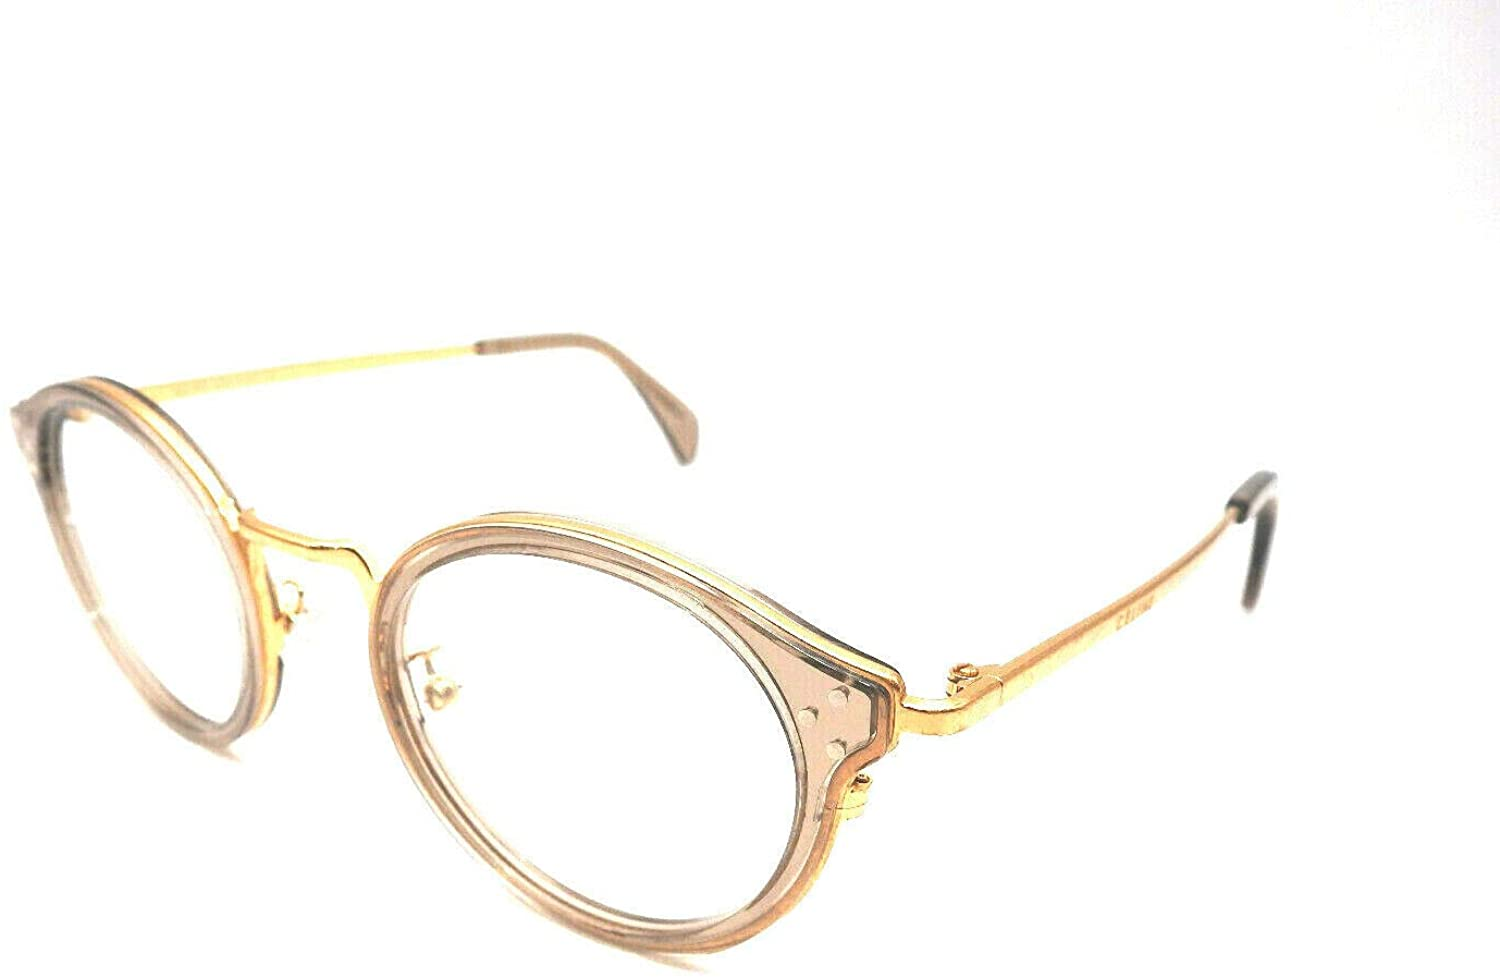 Celine CL50001U - 059 METAL Eyeglass Frame Distressed Gold/Grey 46mm